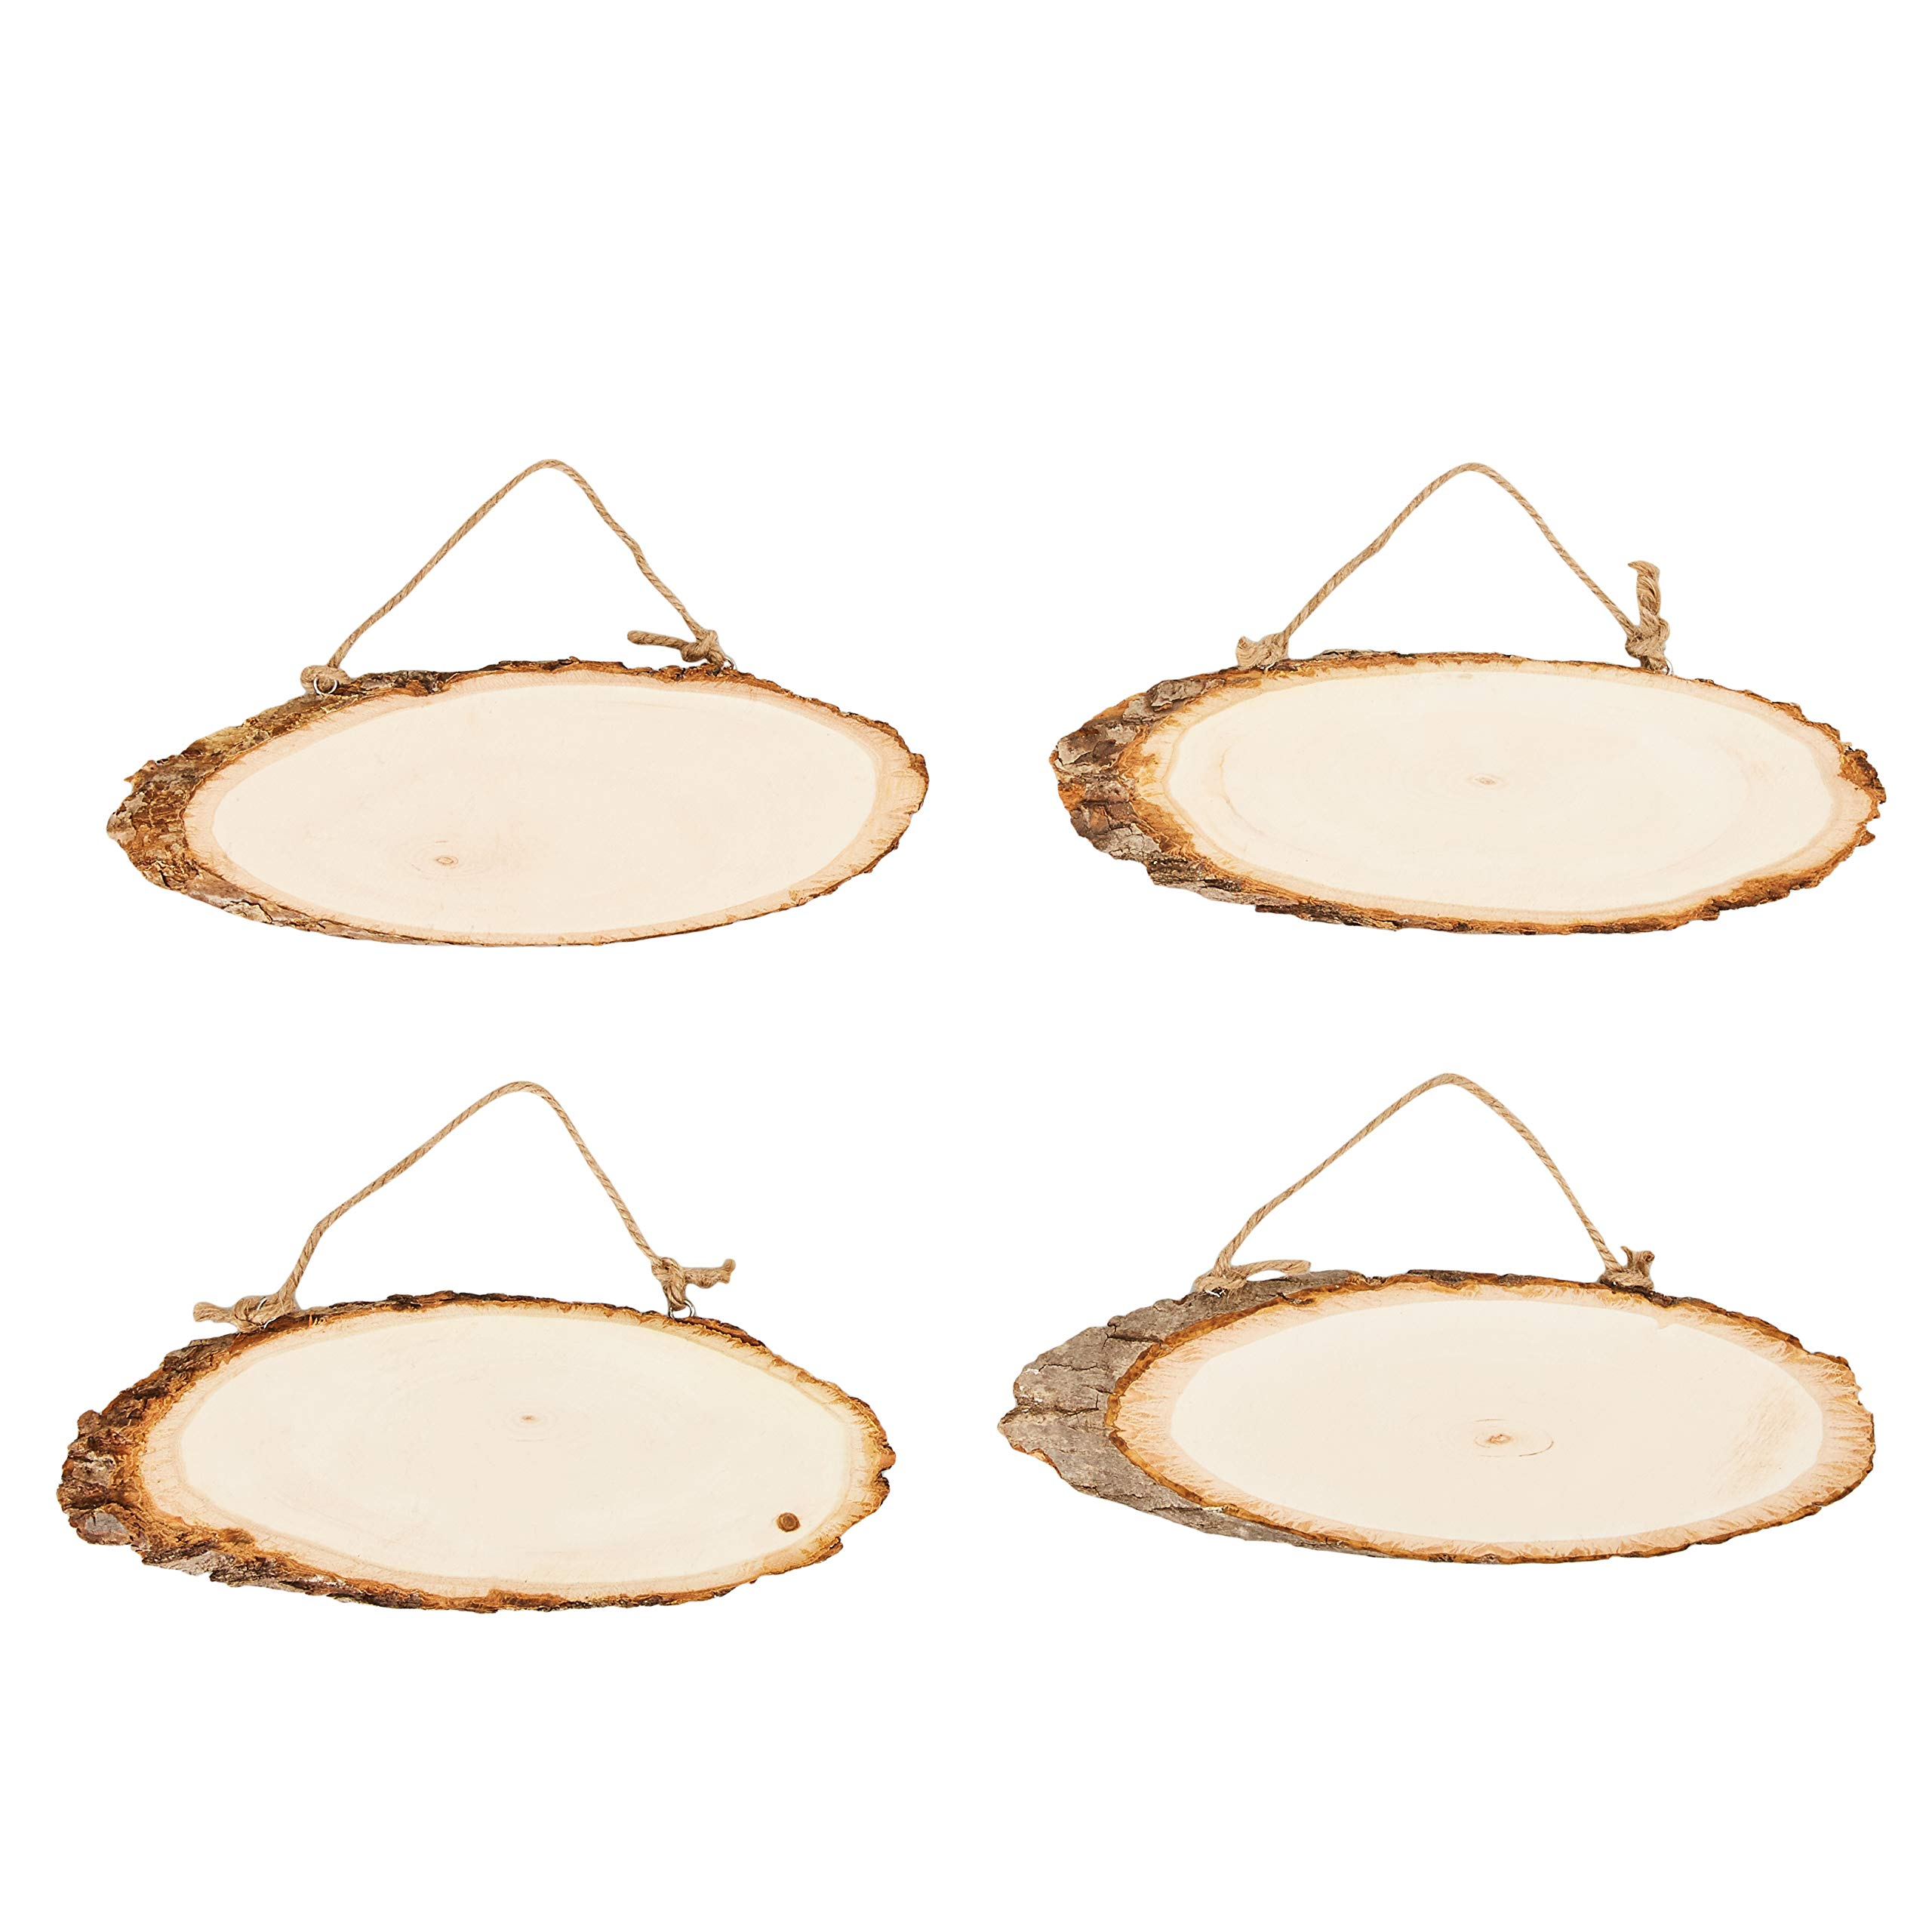 Juvale Unfinished Wood Signs - 4-Pack Hanging Wooden Plaques with Rope, Oval Wood Slices, Natural Wood Signs, Decorative Door Signs, Rustic Signs for Home Decor, DIY Projects, 11 x 5.2 x 0.5 Inches